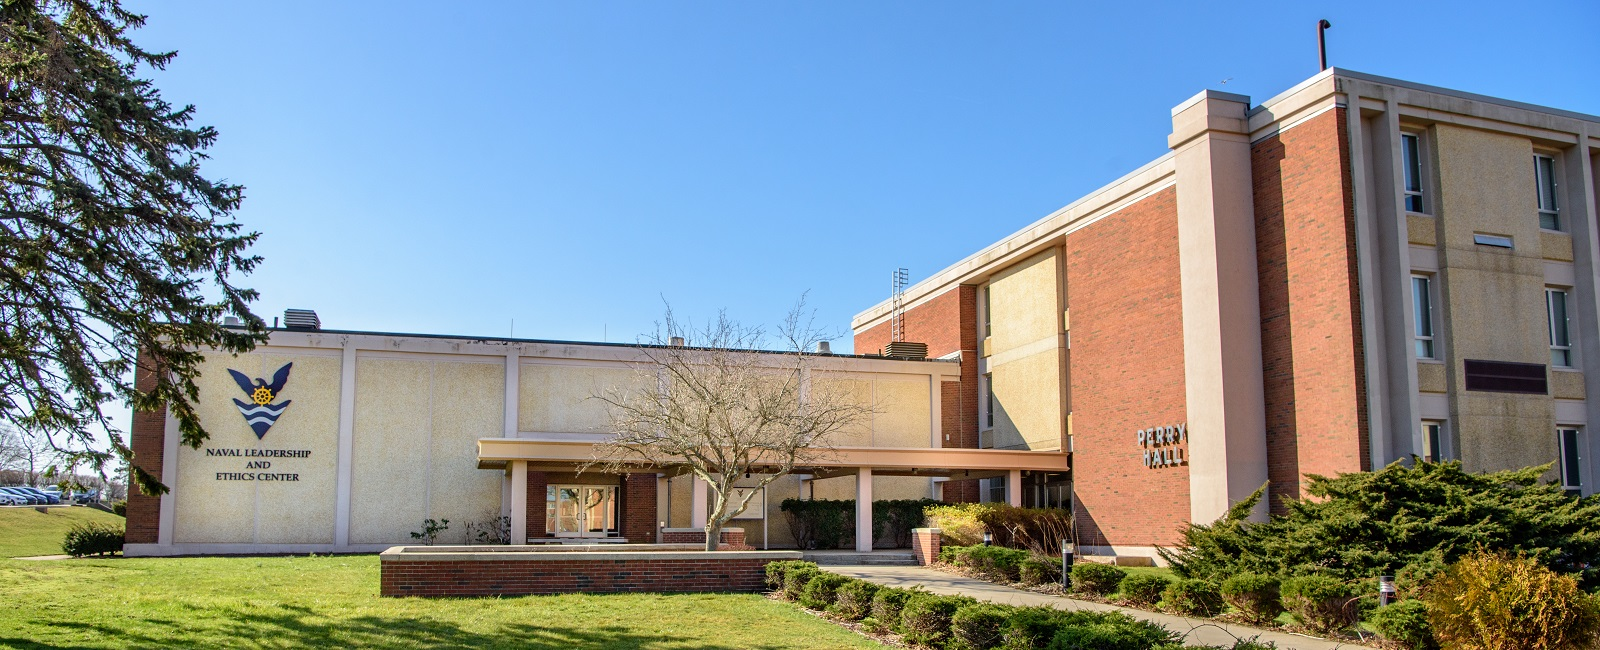 Naval Leadership and Ethics Center building